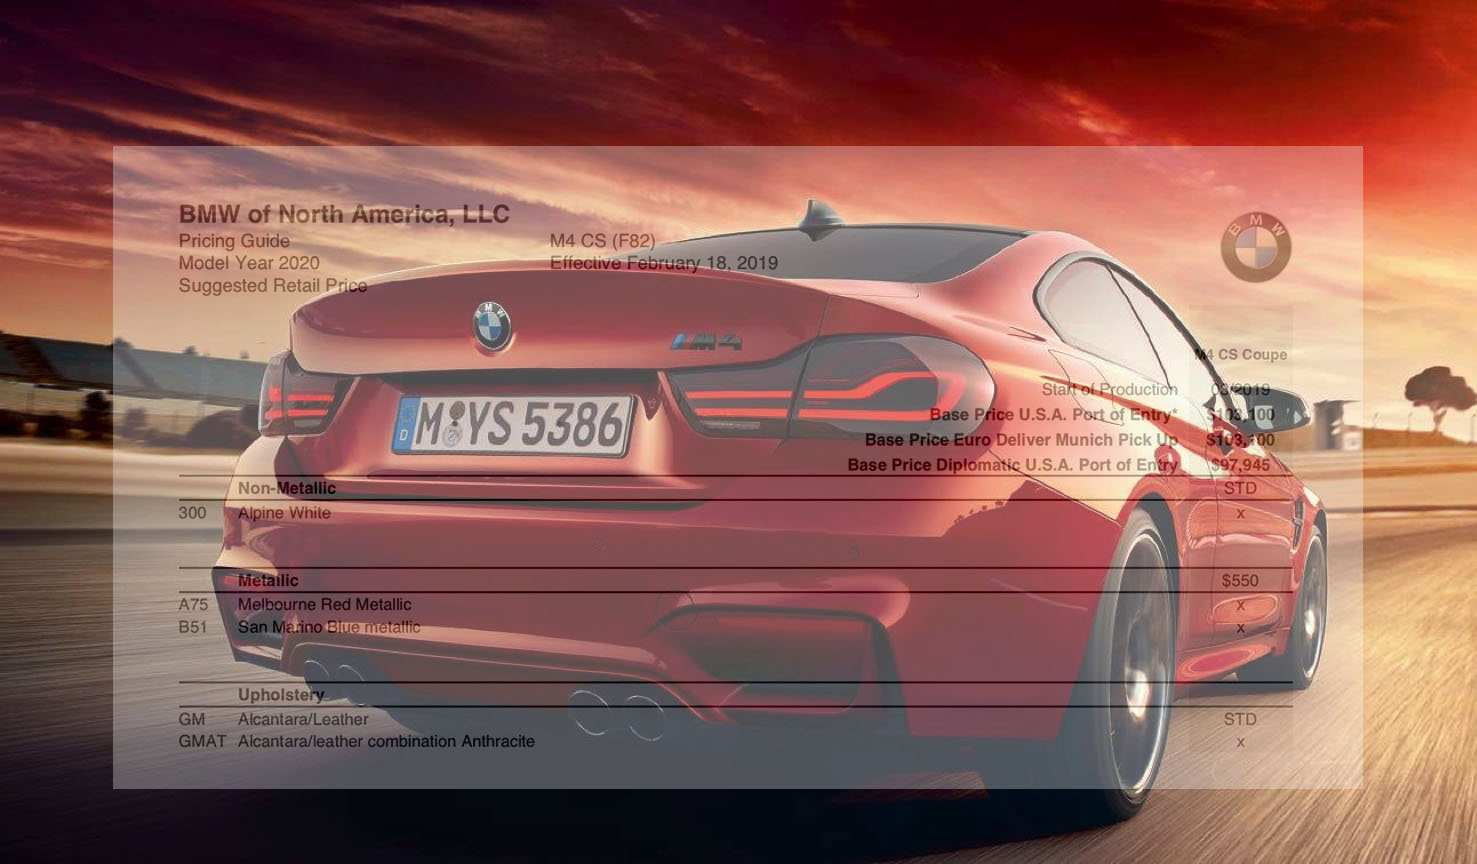 78 All New 2019 Bmw Ordering Guide Engine